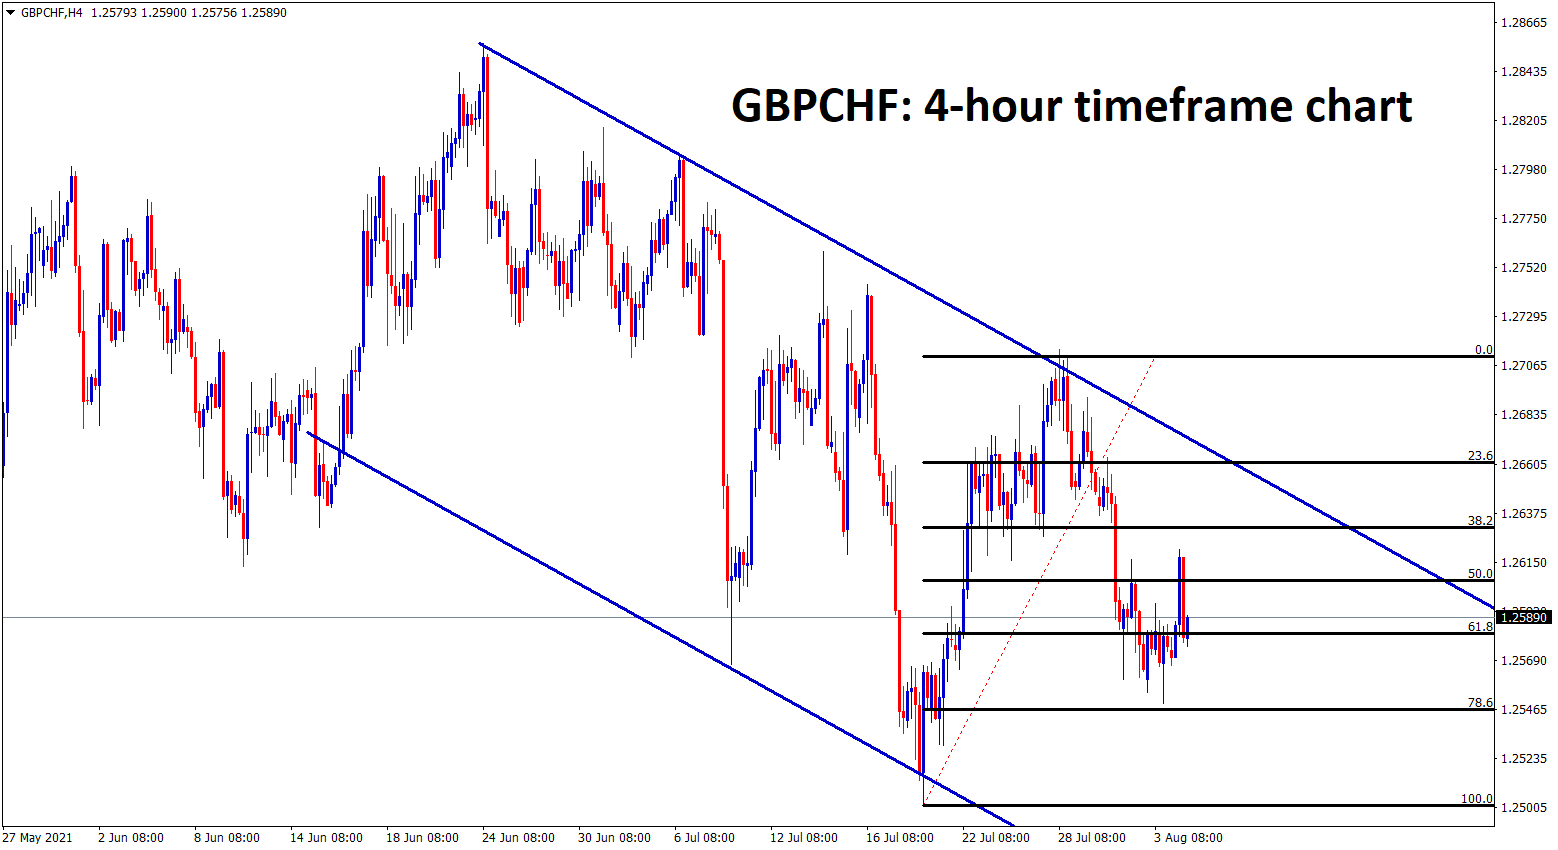 GBPCHF has retraced until 78 from the recent high in an descending channel range